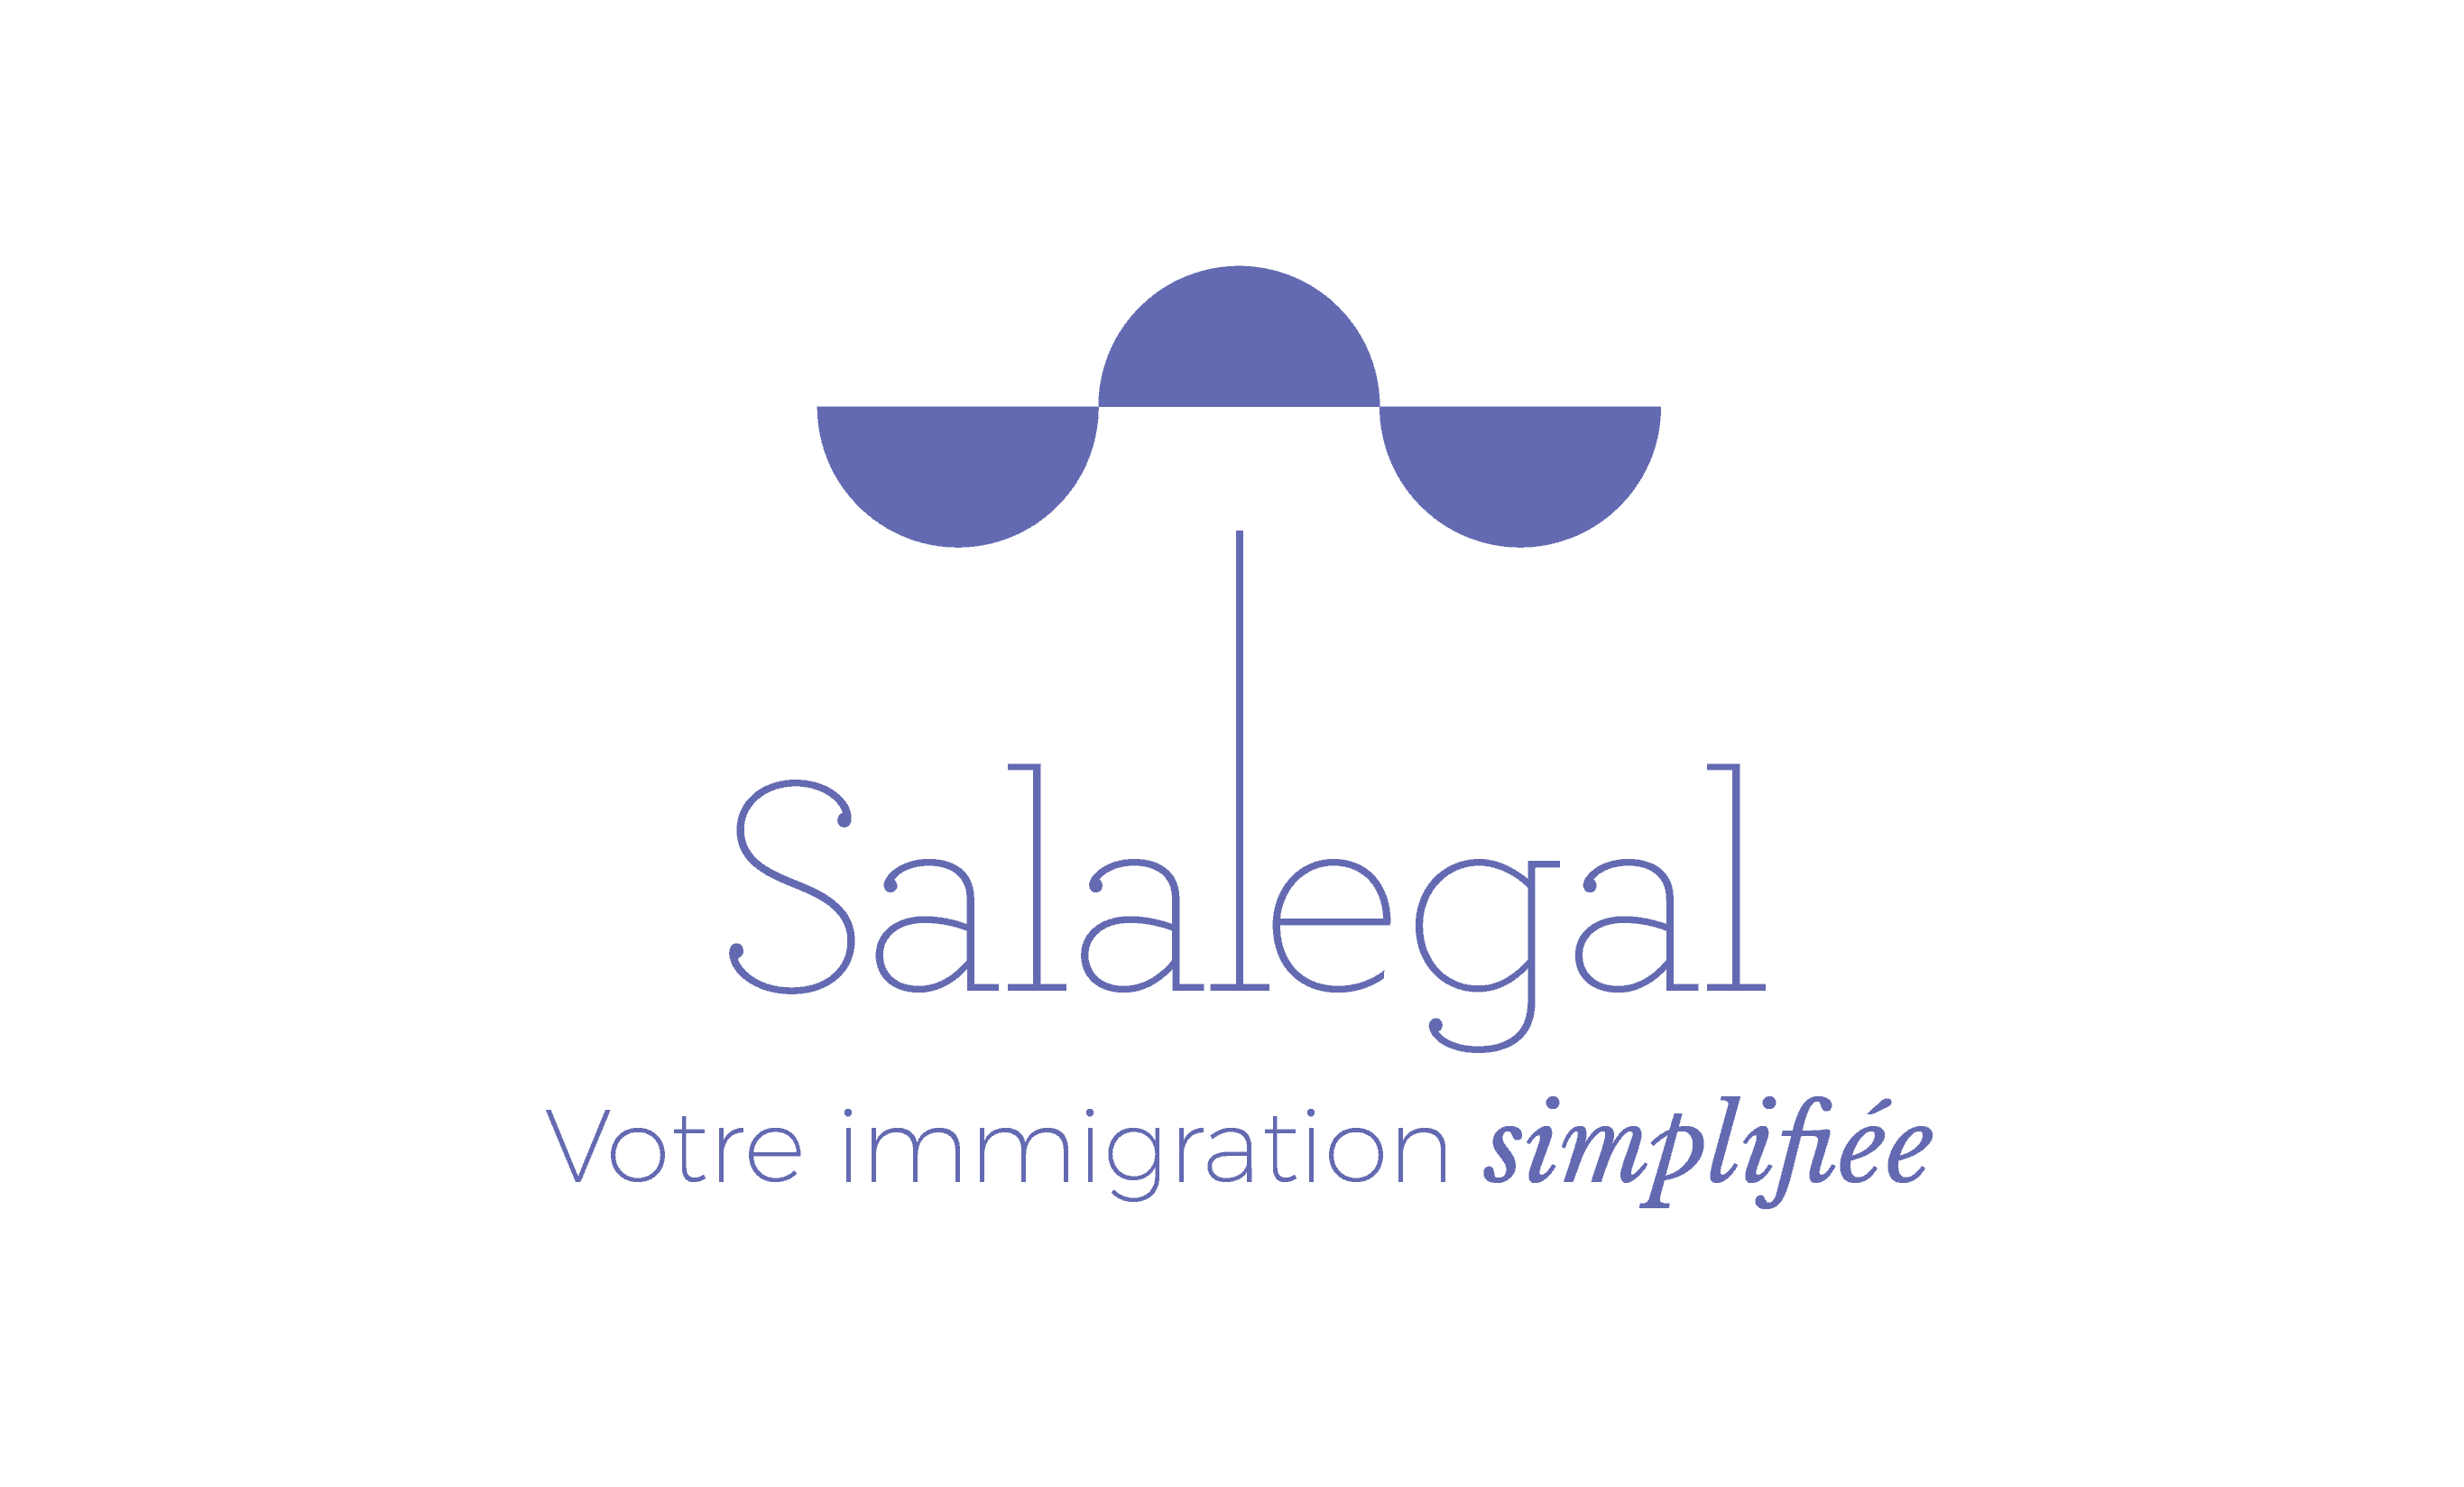 LOGO SALALEGAL-PNG-SAL_17_003_Carte copy 3@16x-3